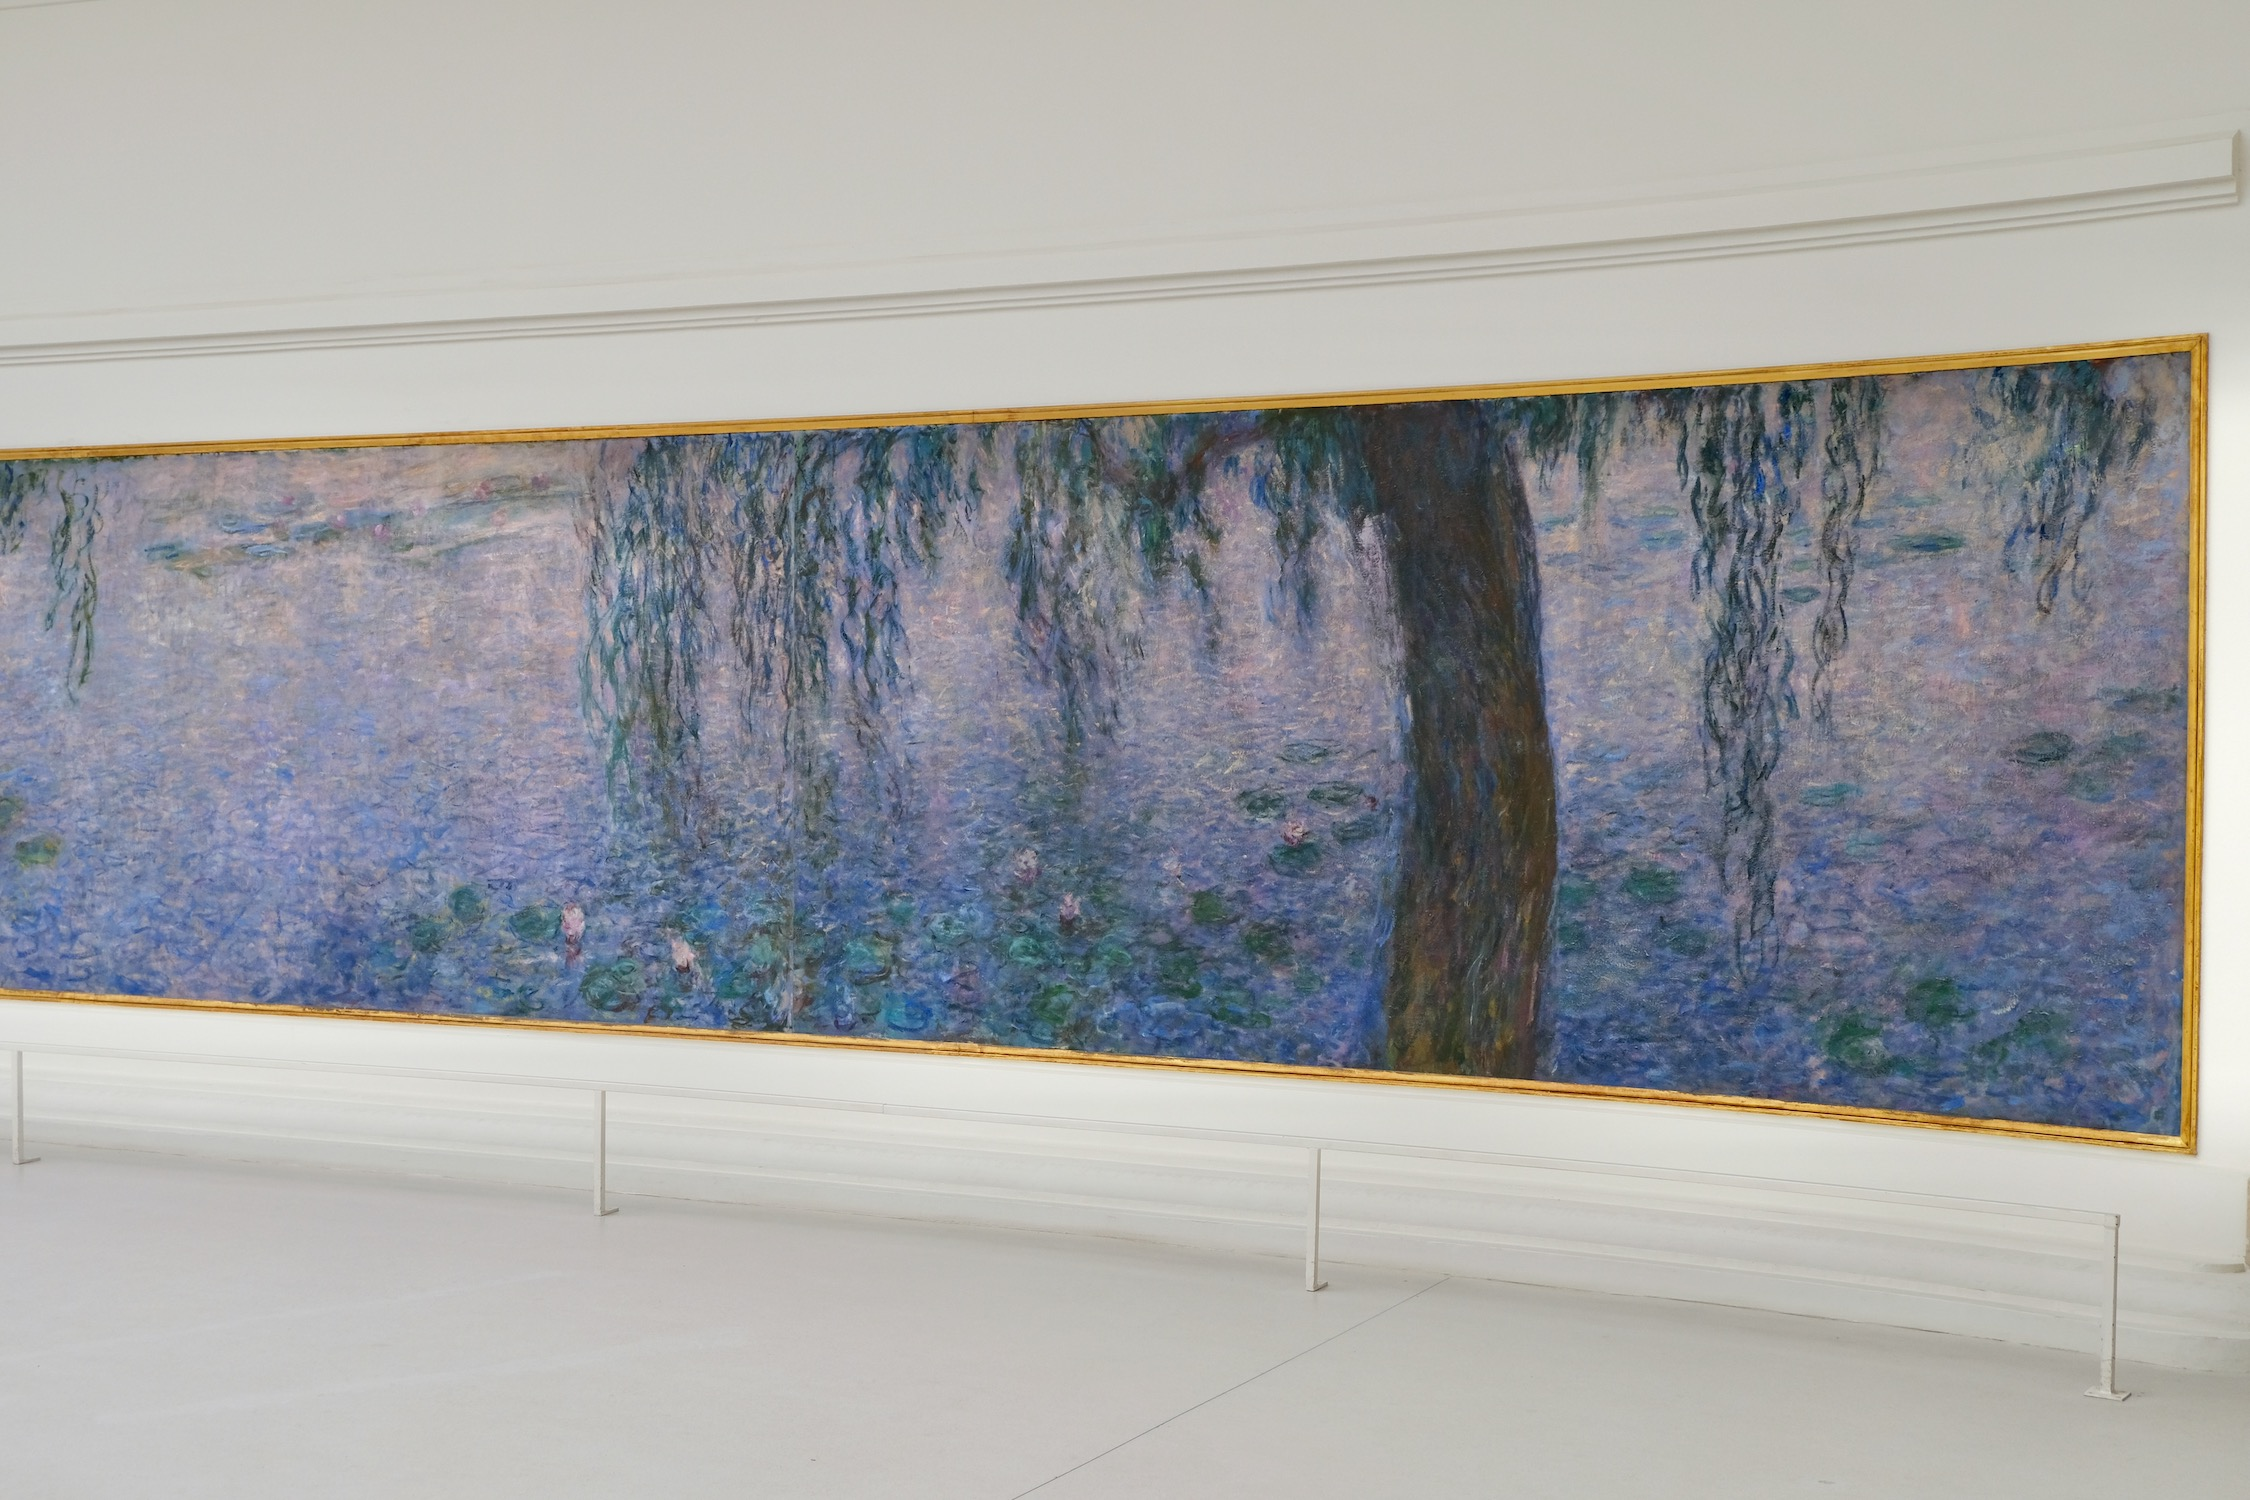 Monet's water lilies and willow tree